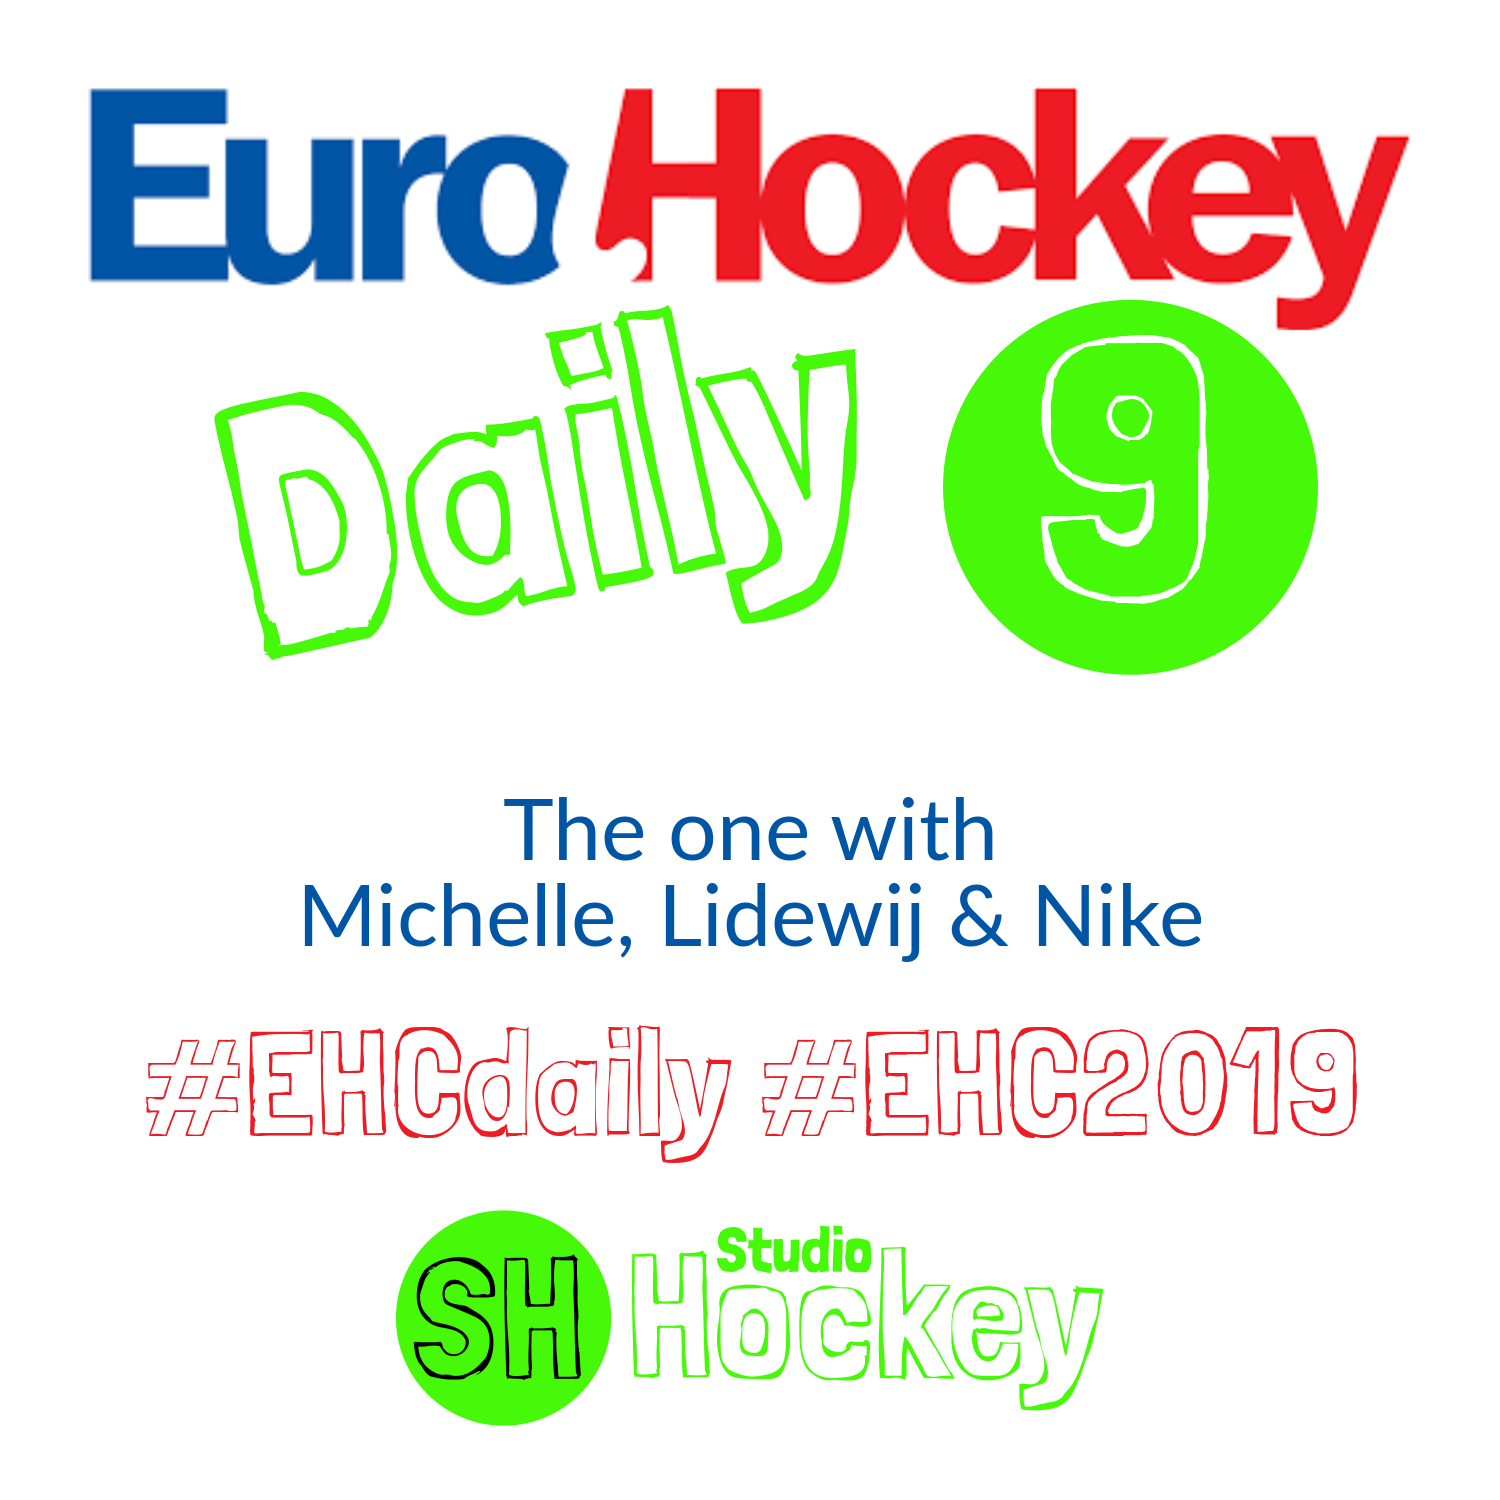 ehcdaily_9